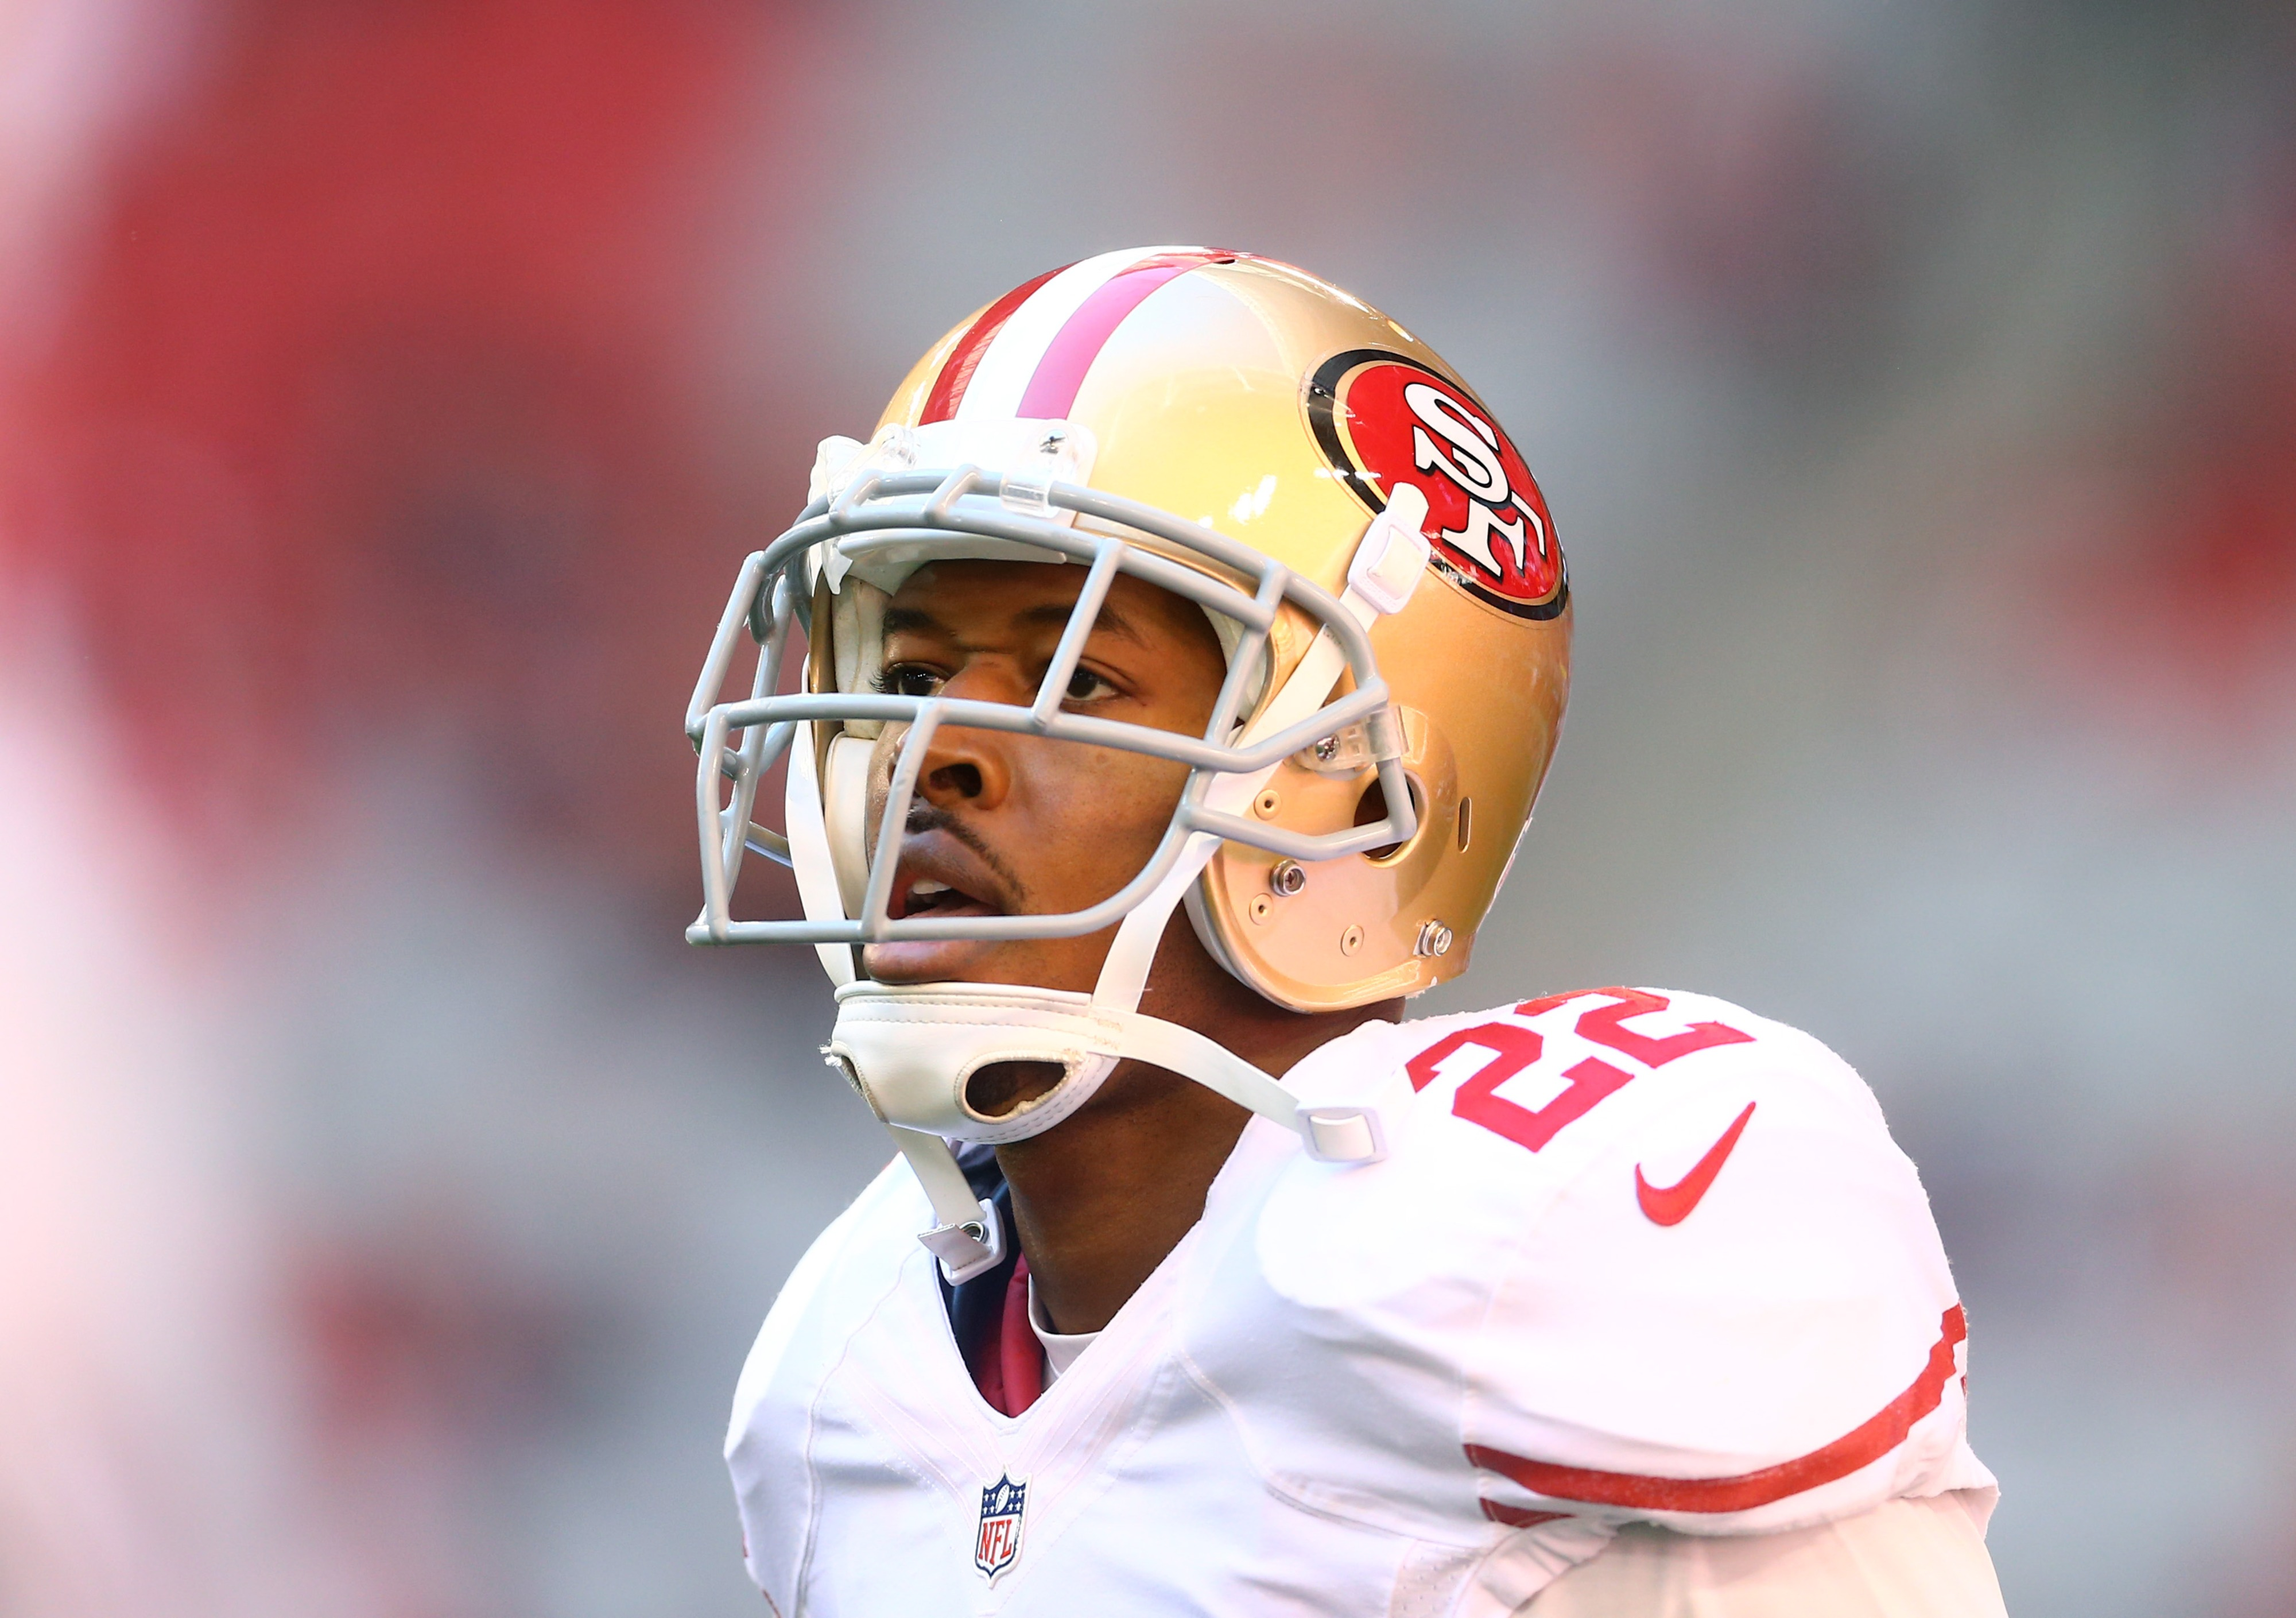 Carlos Rogers injury: 49ers CB expects to play vs. Seahawks